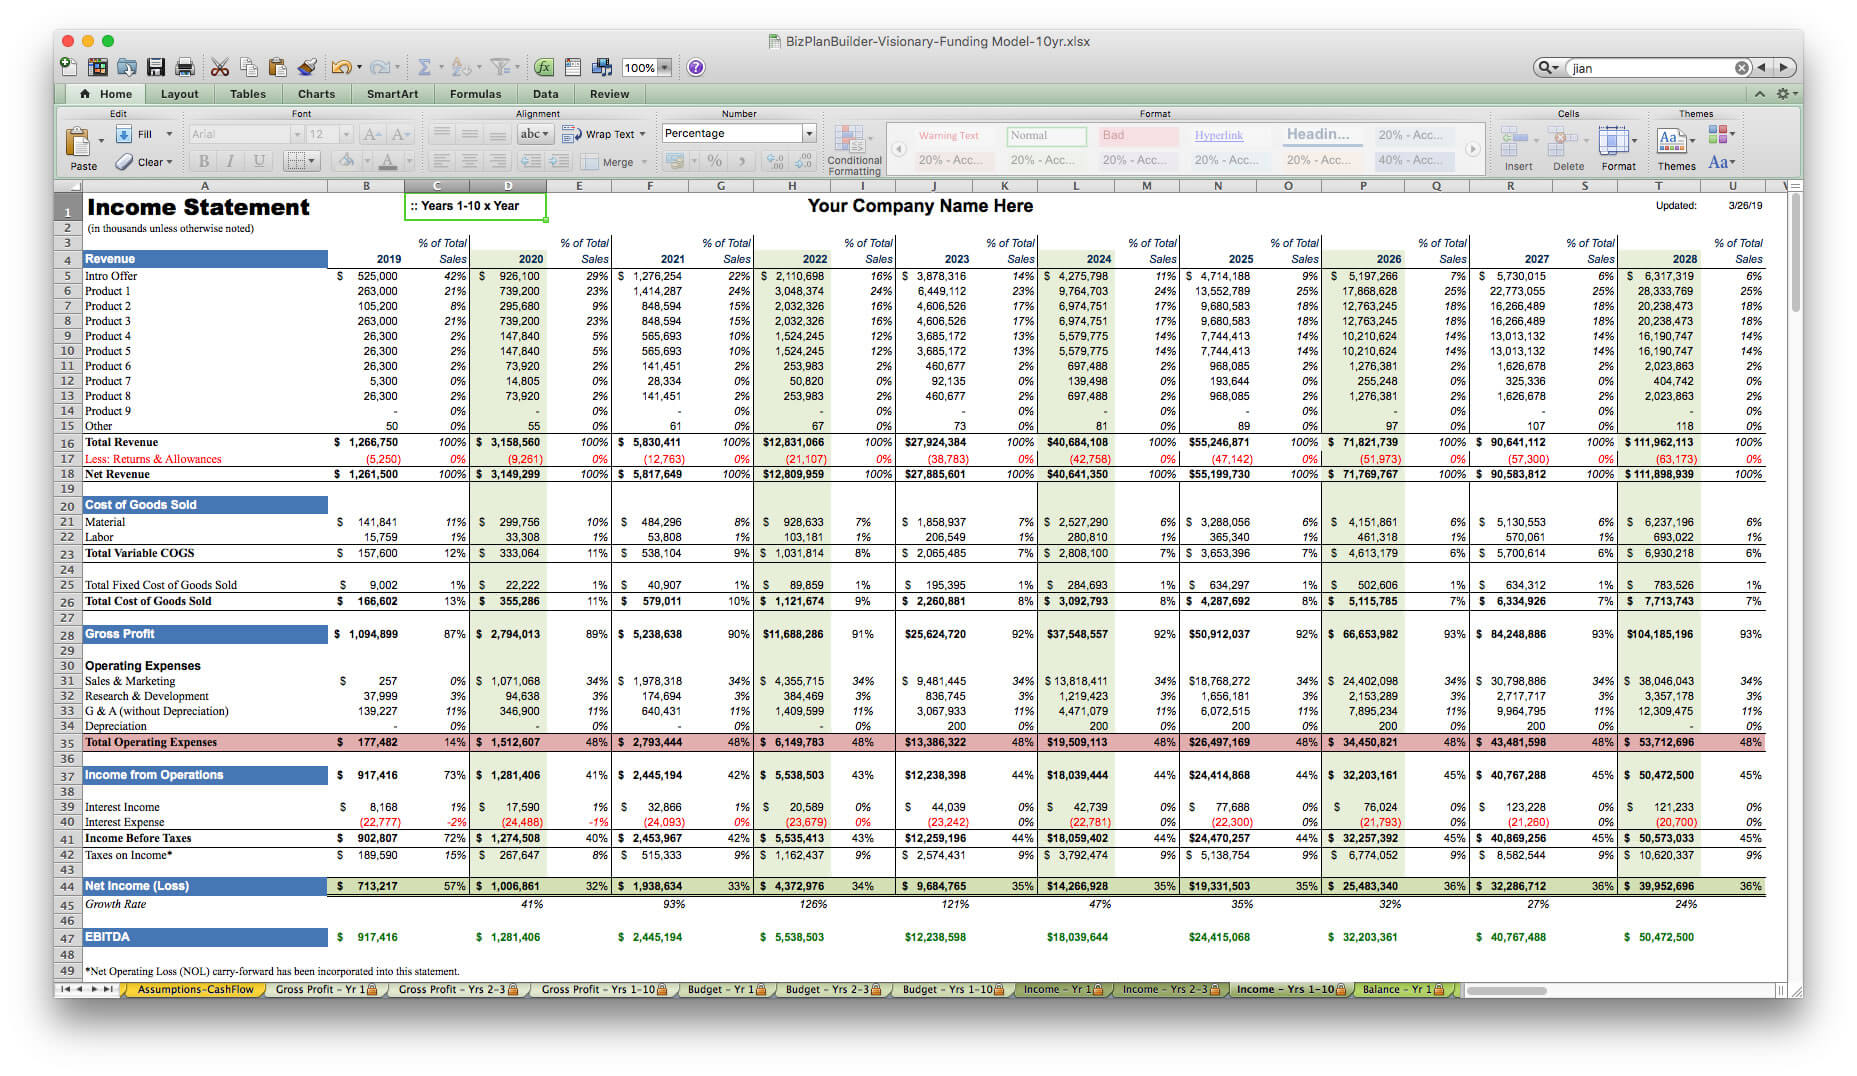 010 Template Ideas Screen Image Business Plan Year Financial For Business Plan Financial Template Excel Download